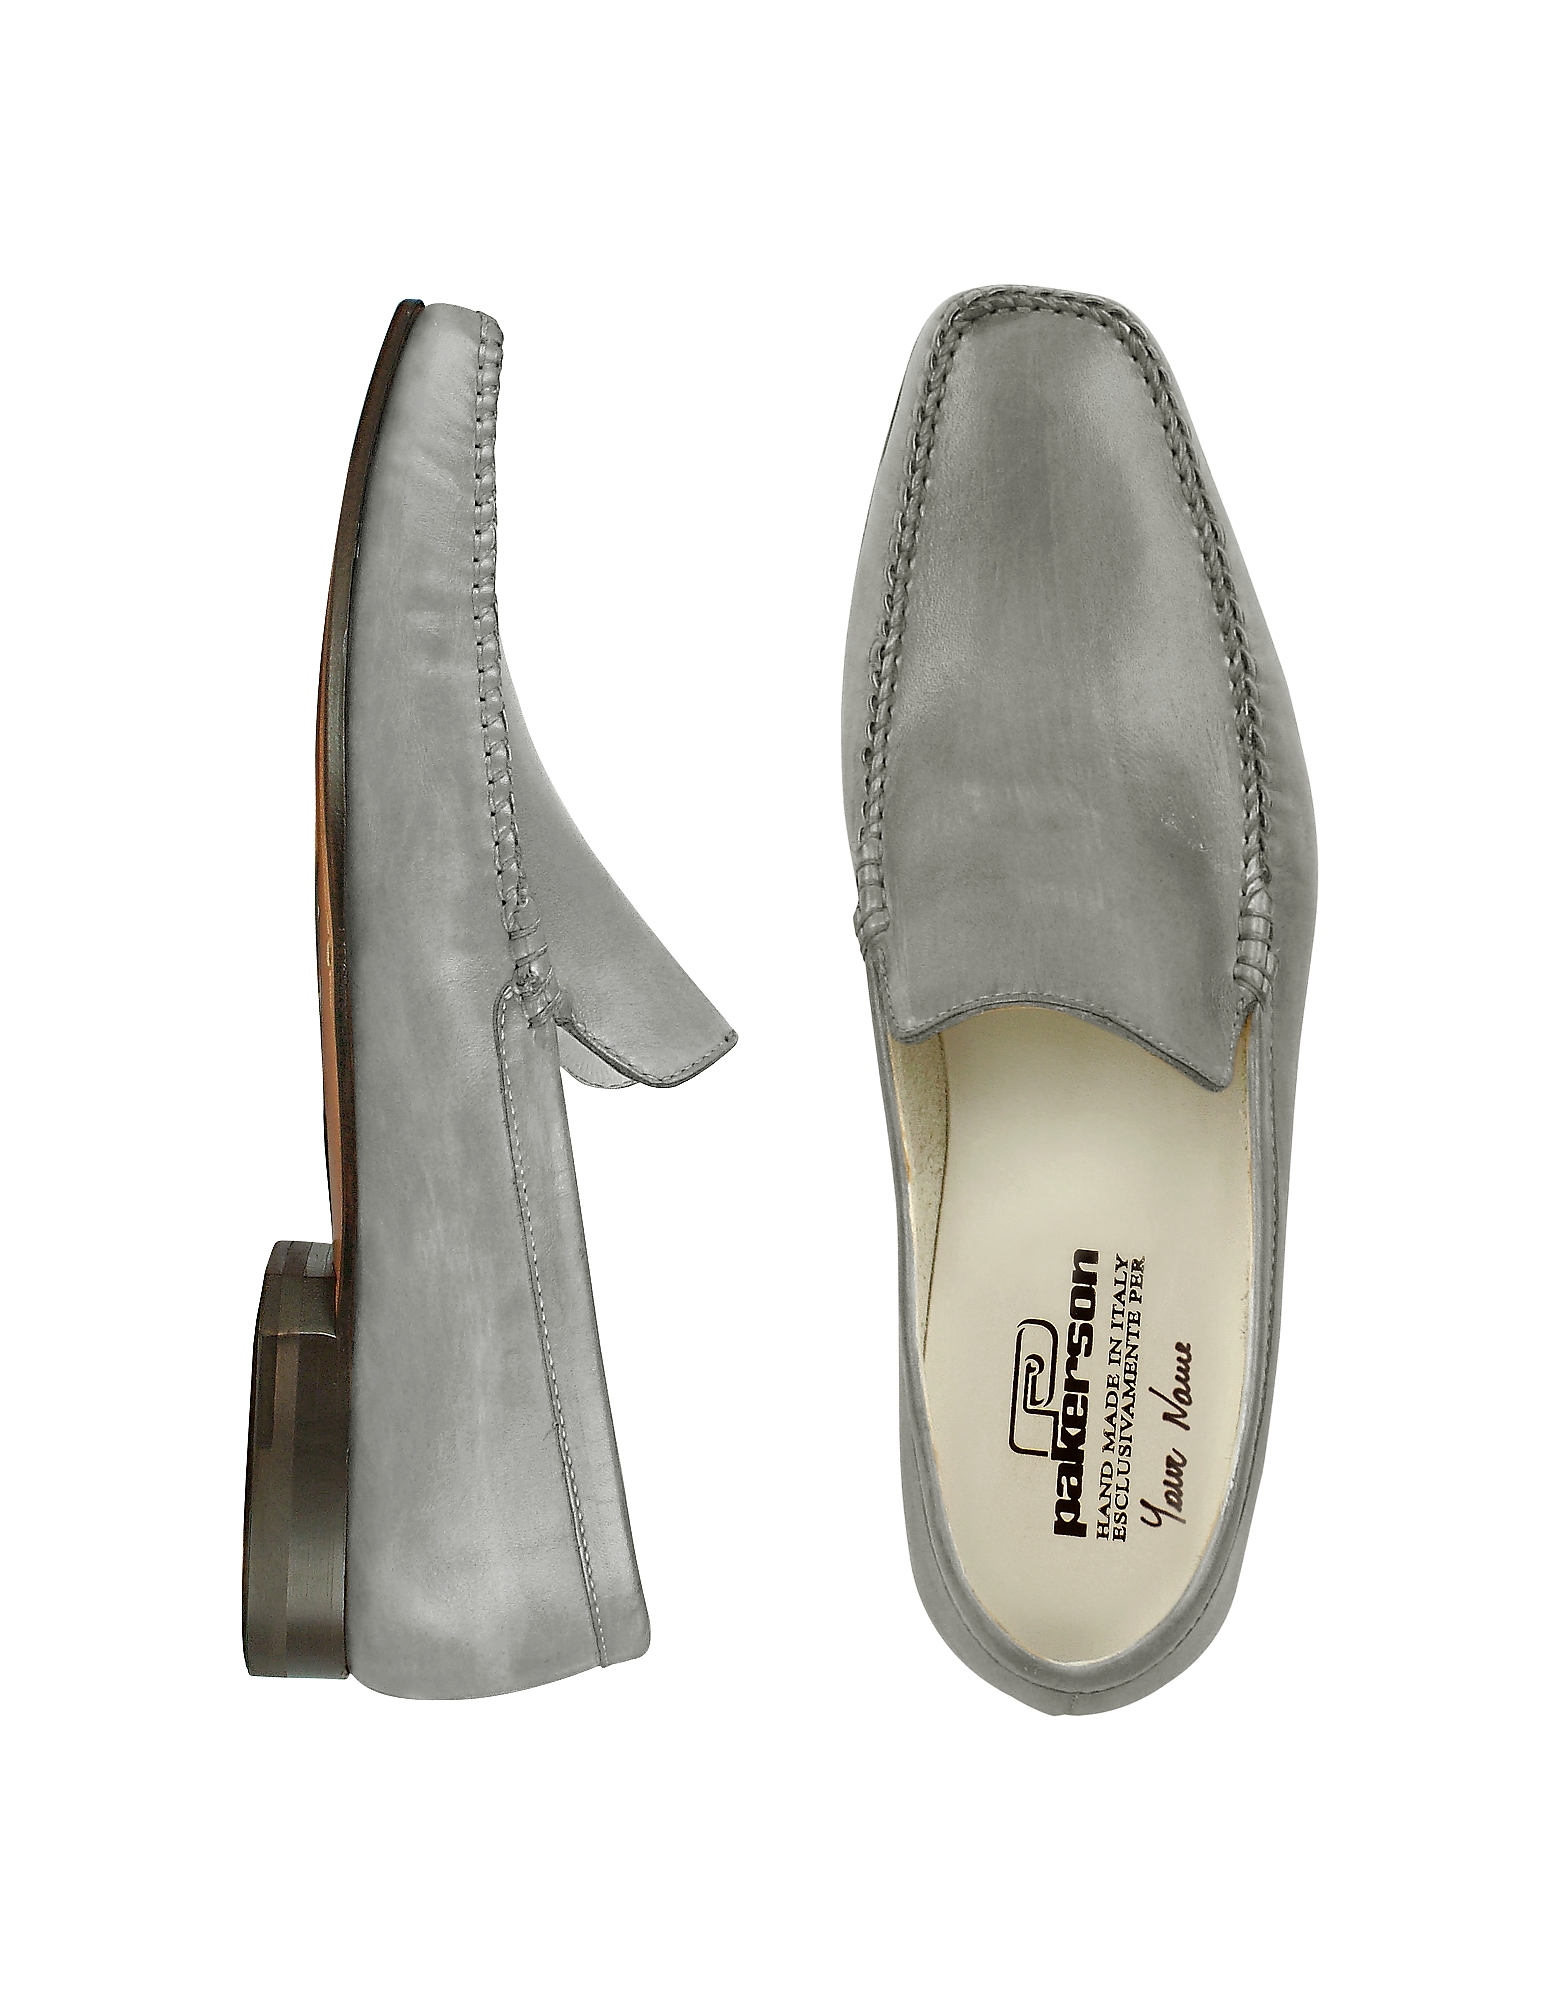 Pakerson Shoes, Gray Italian Handmade Leather Loafer Shoes